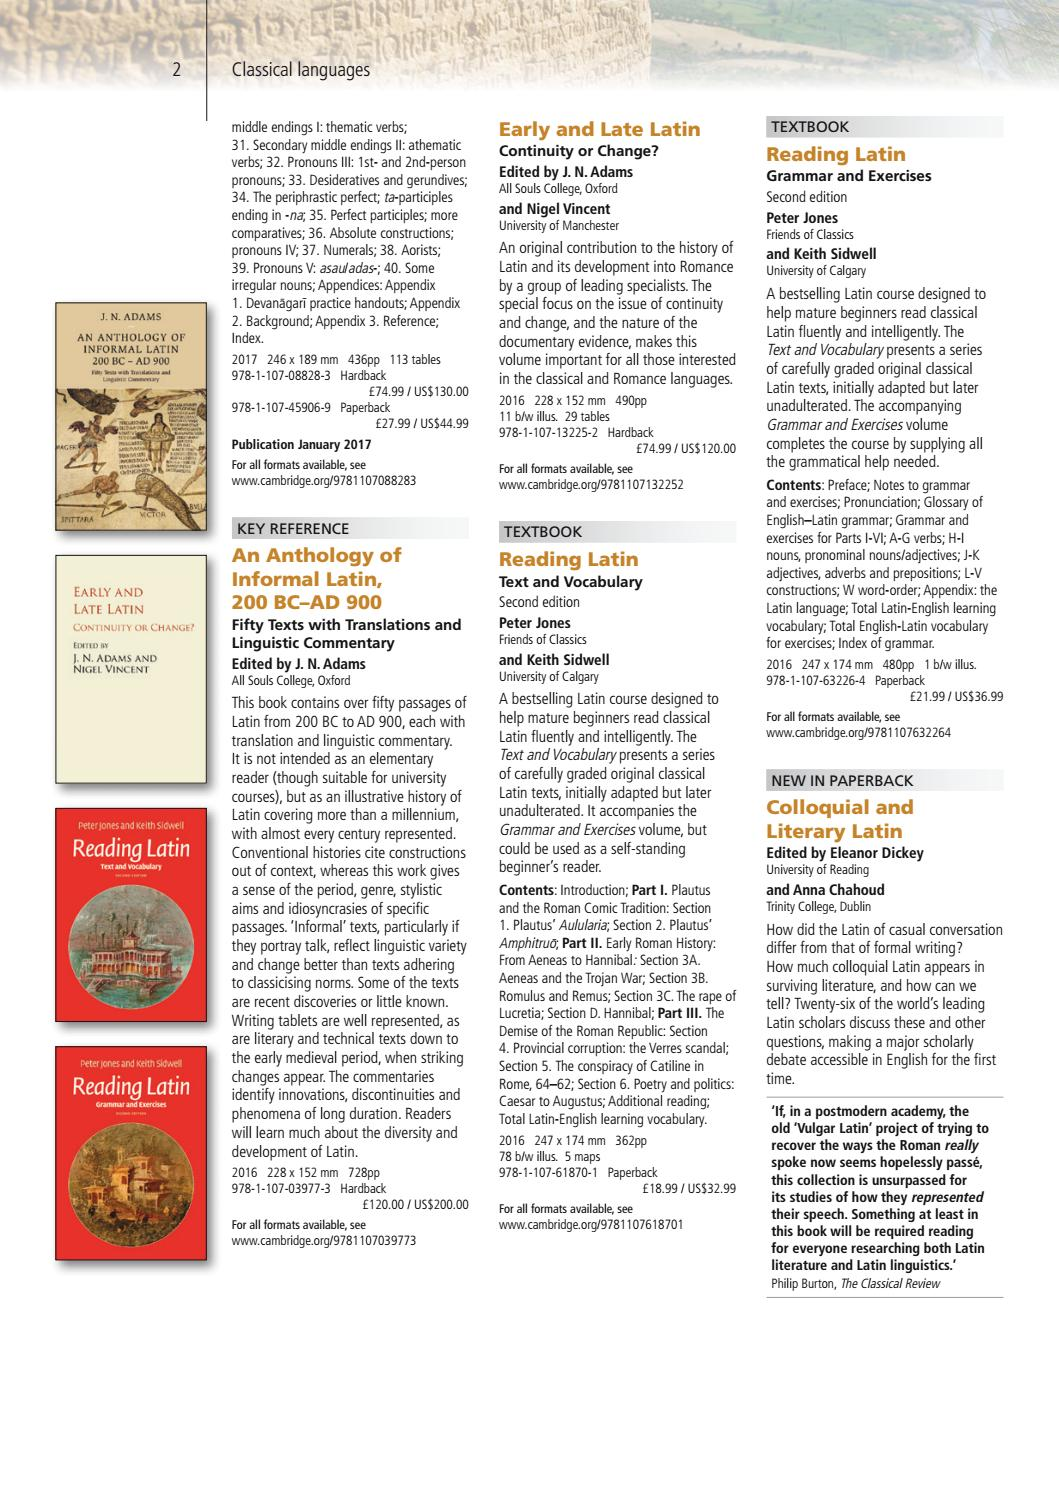 An Anthology of Informal Latin 200 BC-AD 900 Fifty Texts with Translations and Linguistic Commentary